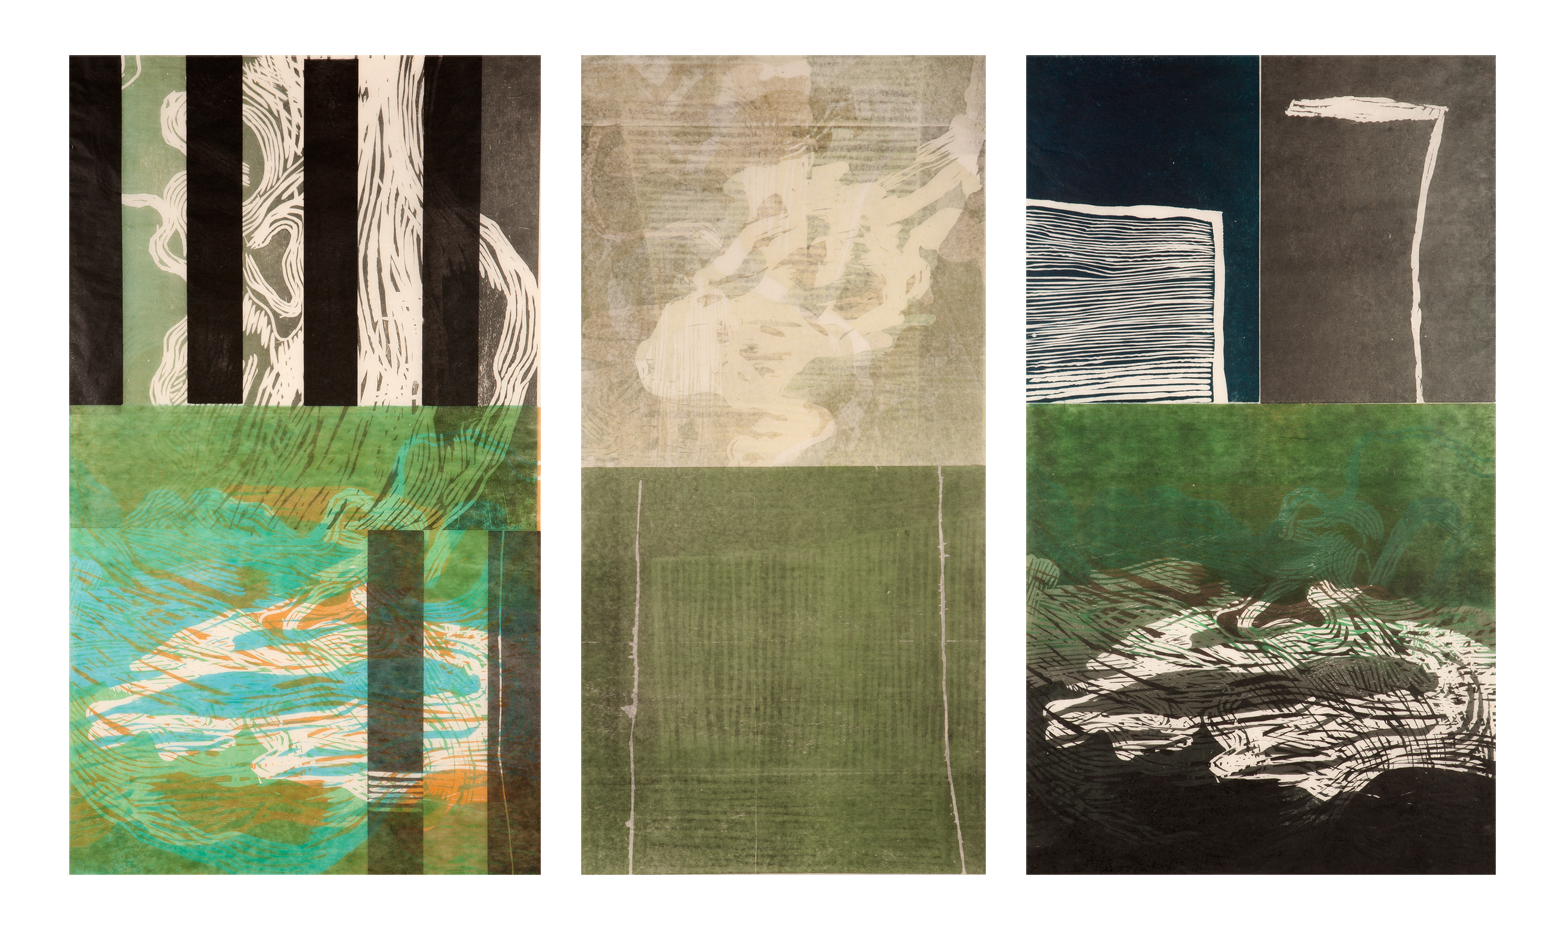 Enclosure and the river triptych, 3 unique state relief prints each 120 x 60 cm on Chinese handmade paper, 2014